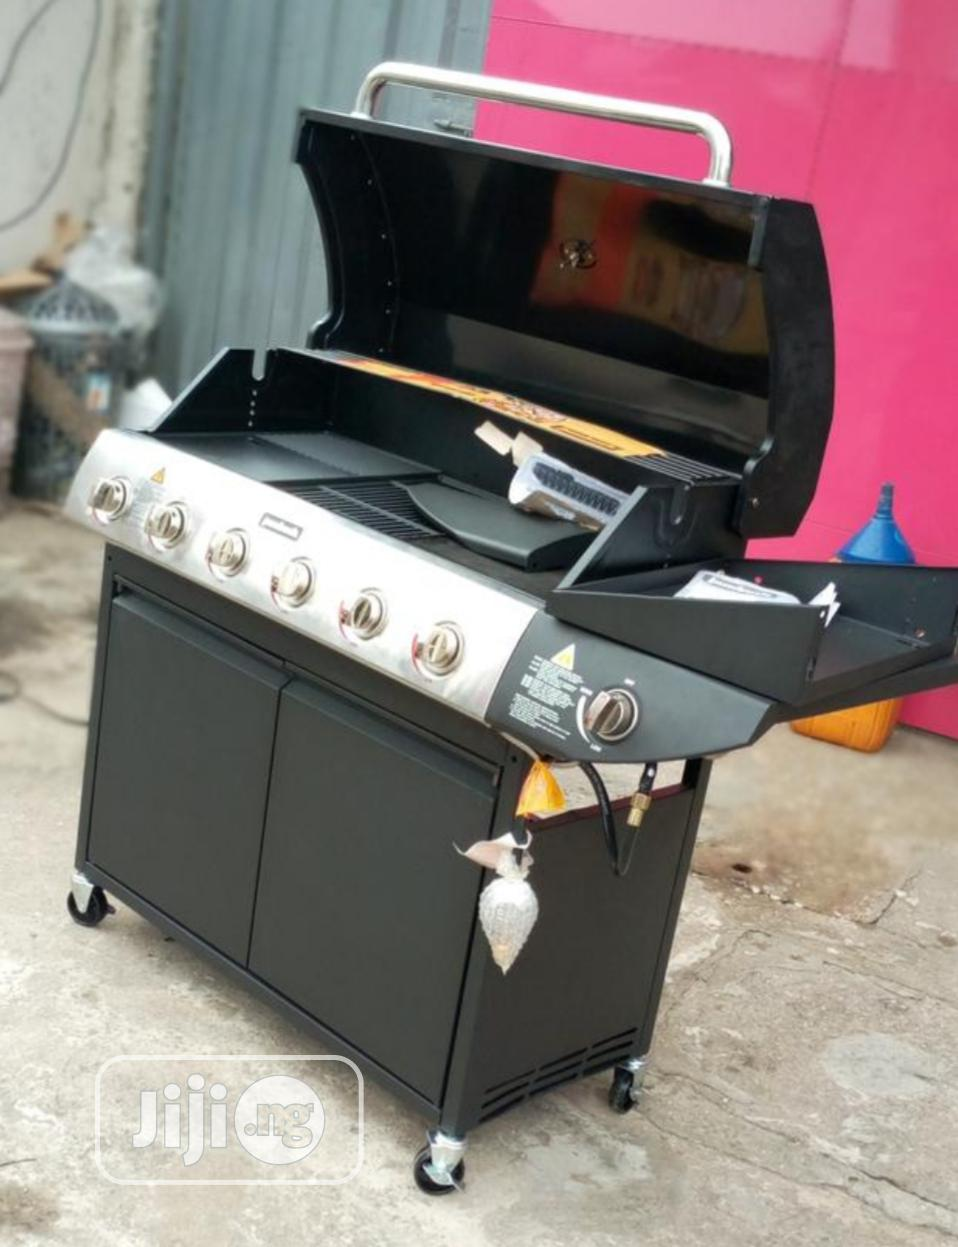 6 Burner Gas Barbeque Grill With Side Grill